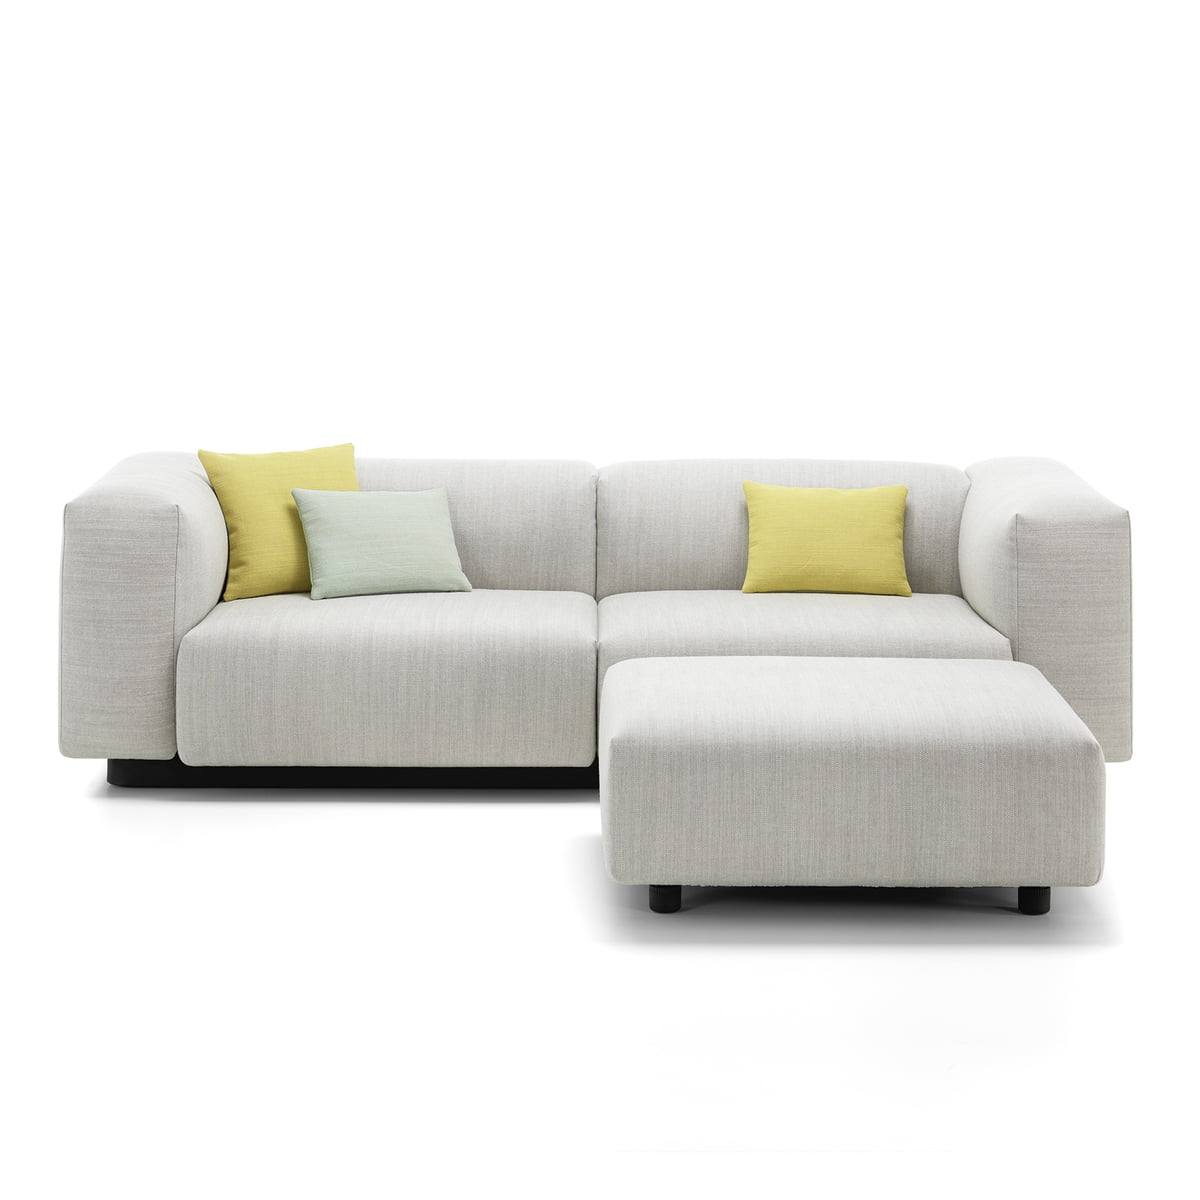 2 seater sofa with chaise furniture sofa sectionals chaise for Chaise and ottoman